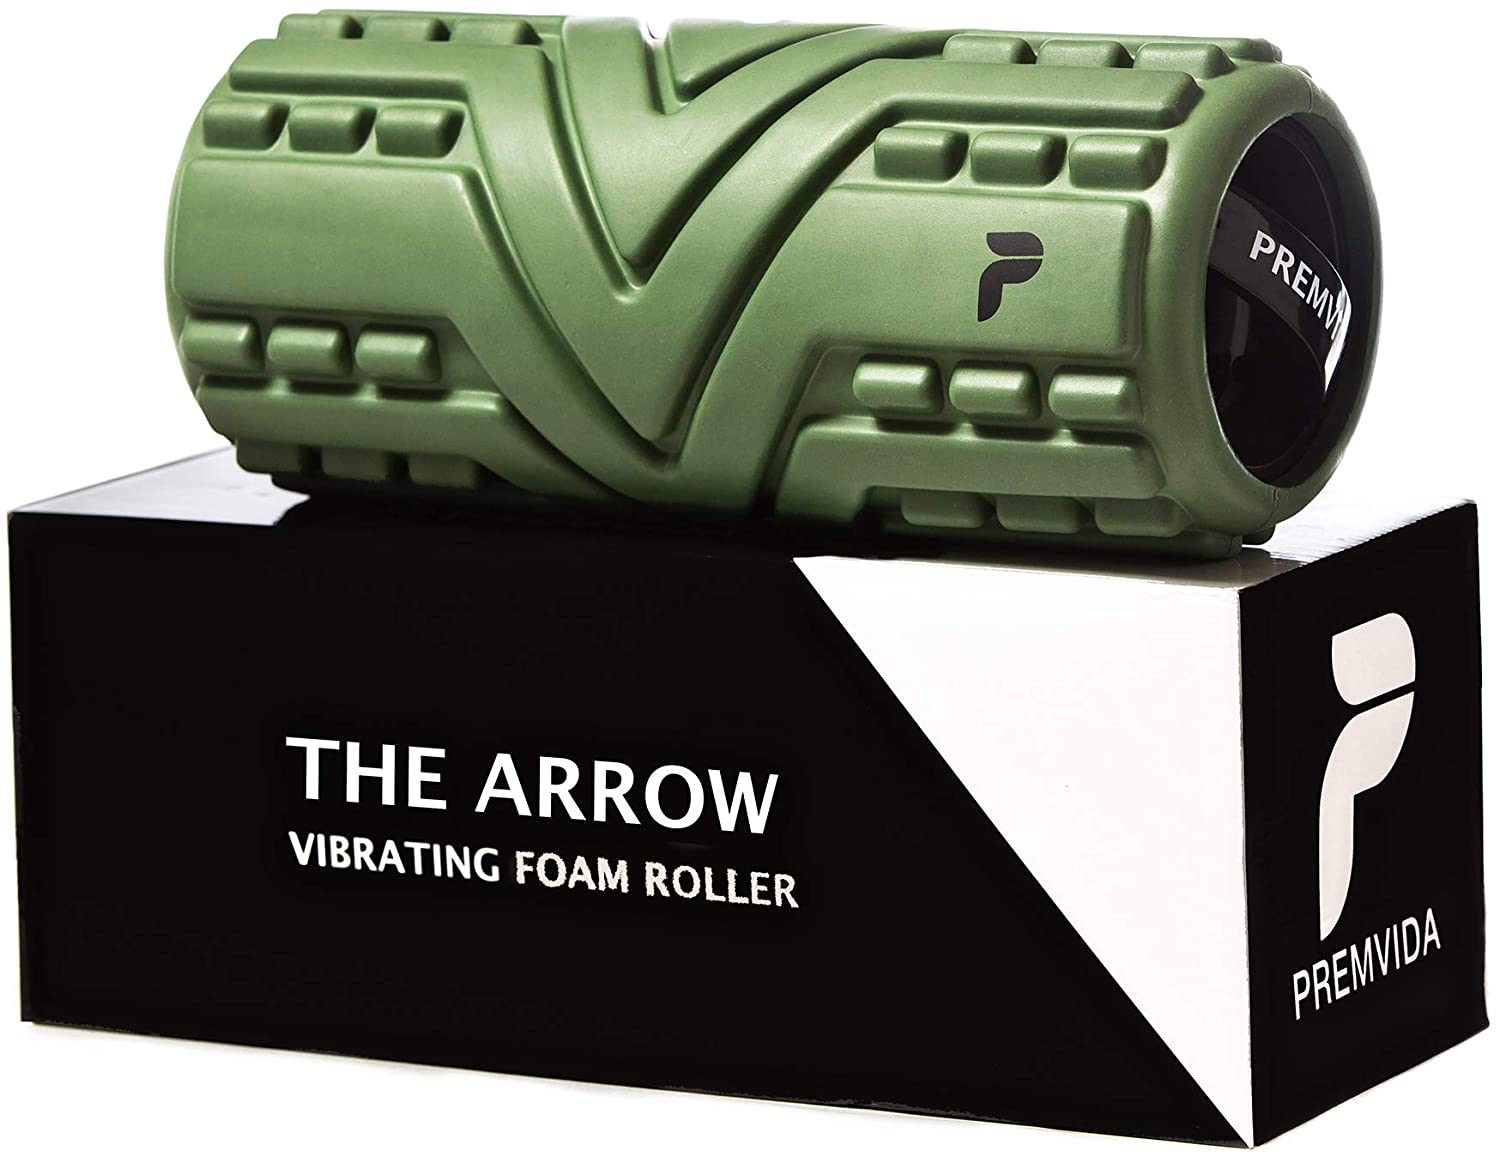 Premvida 3-Speed Vibrating Foam Roller – High Intensity Vibrating Massage Roller for Deep Muscle Recovery Deep Tissue Sports Massage, Electric Back Roller for Running, Mobility, Myofascial Release